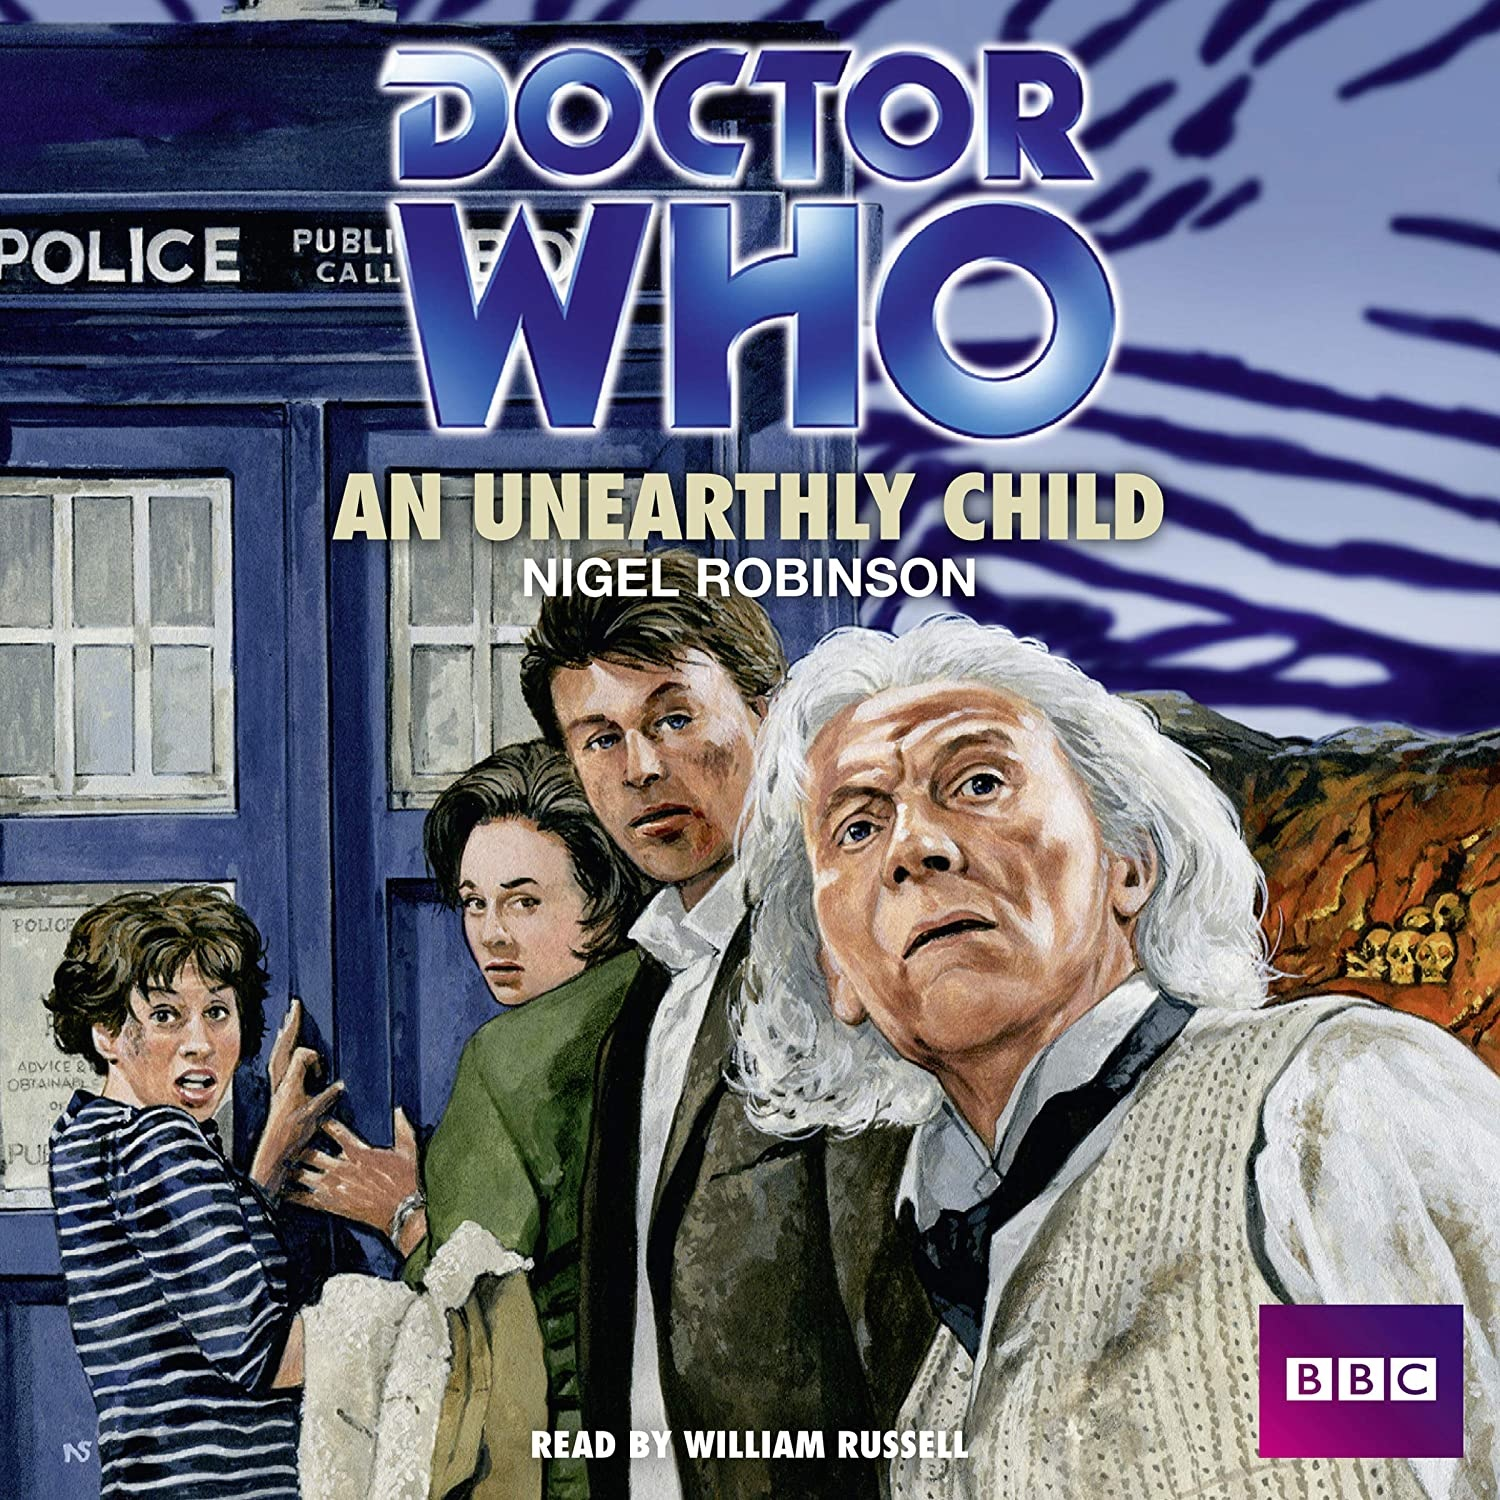 Help! There's A Missing Doctor Who Story Trapped Inside My Brain!